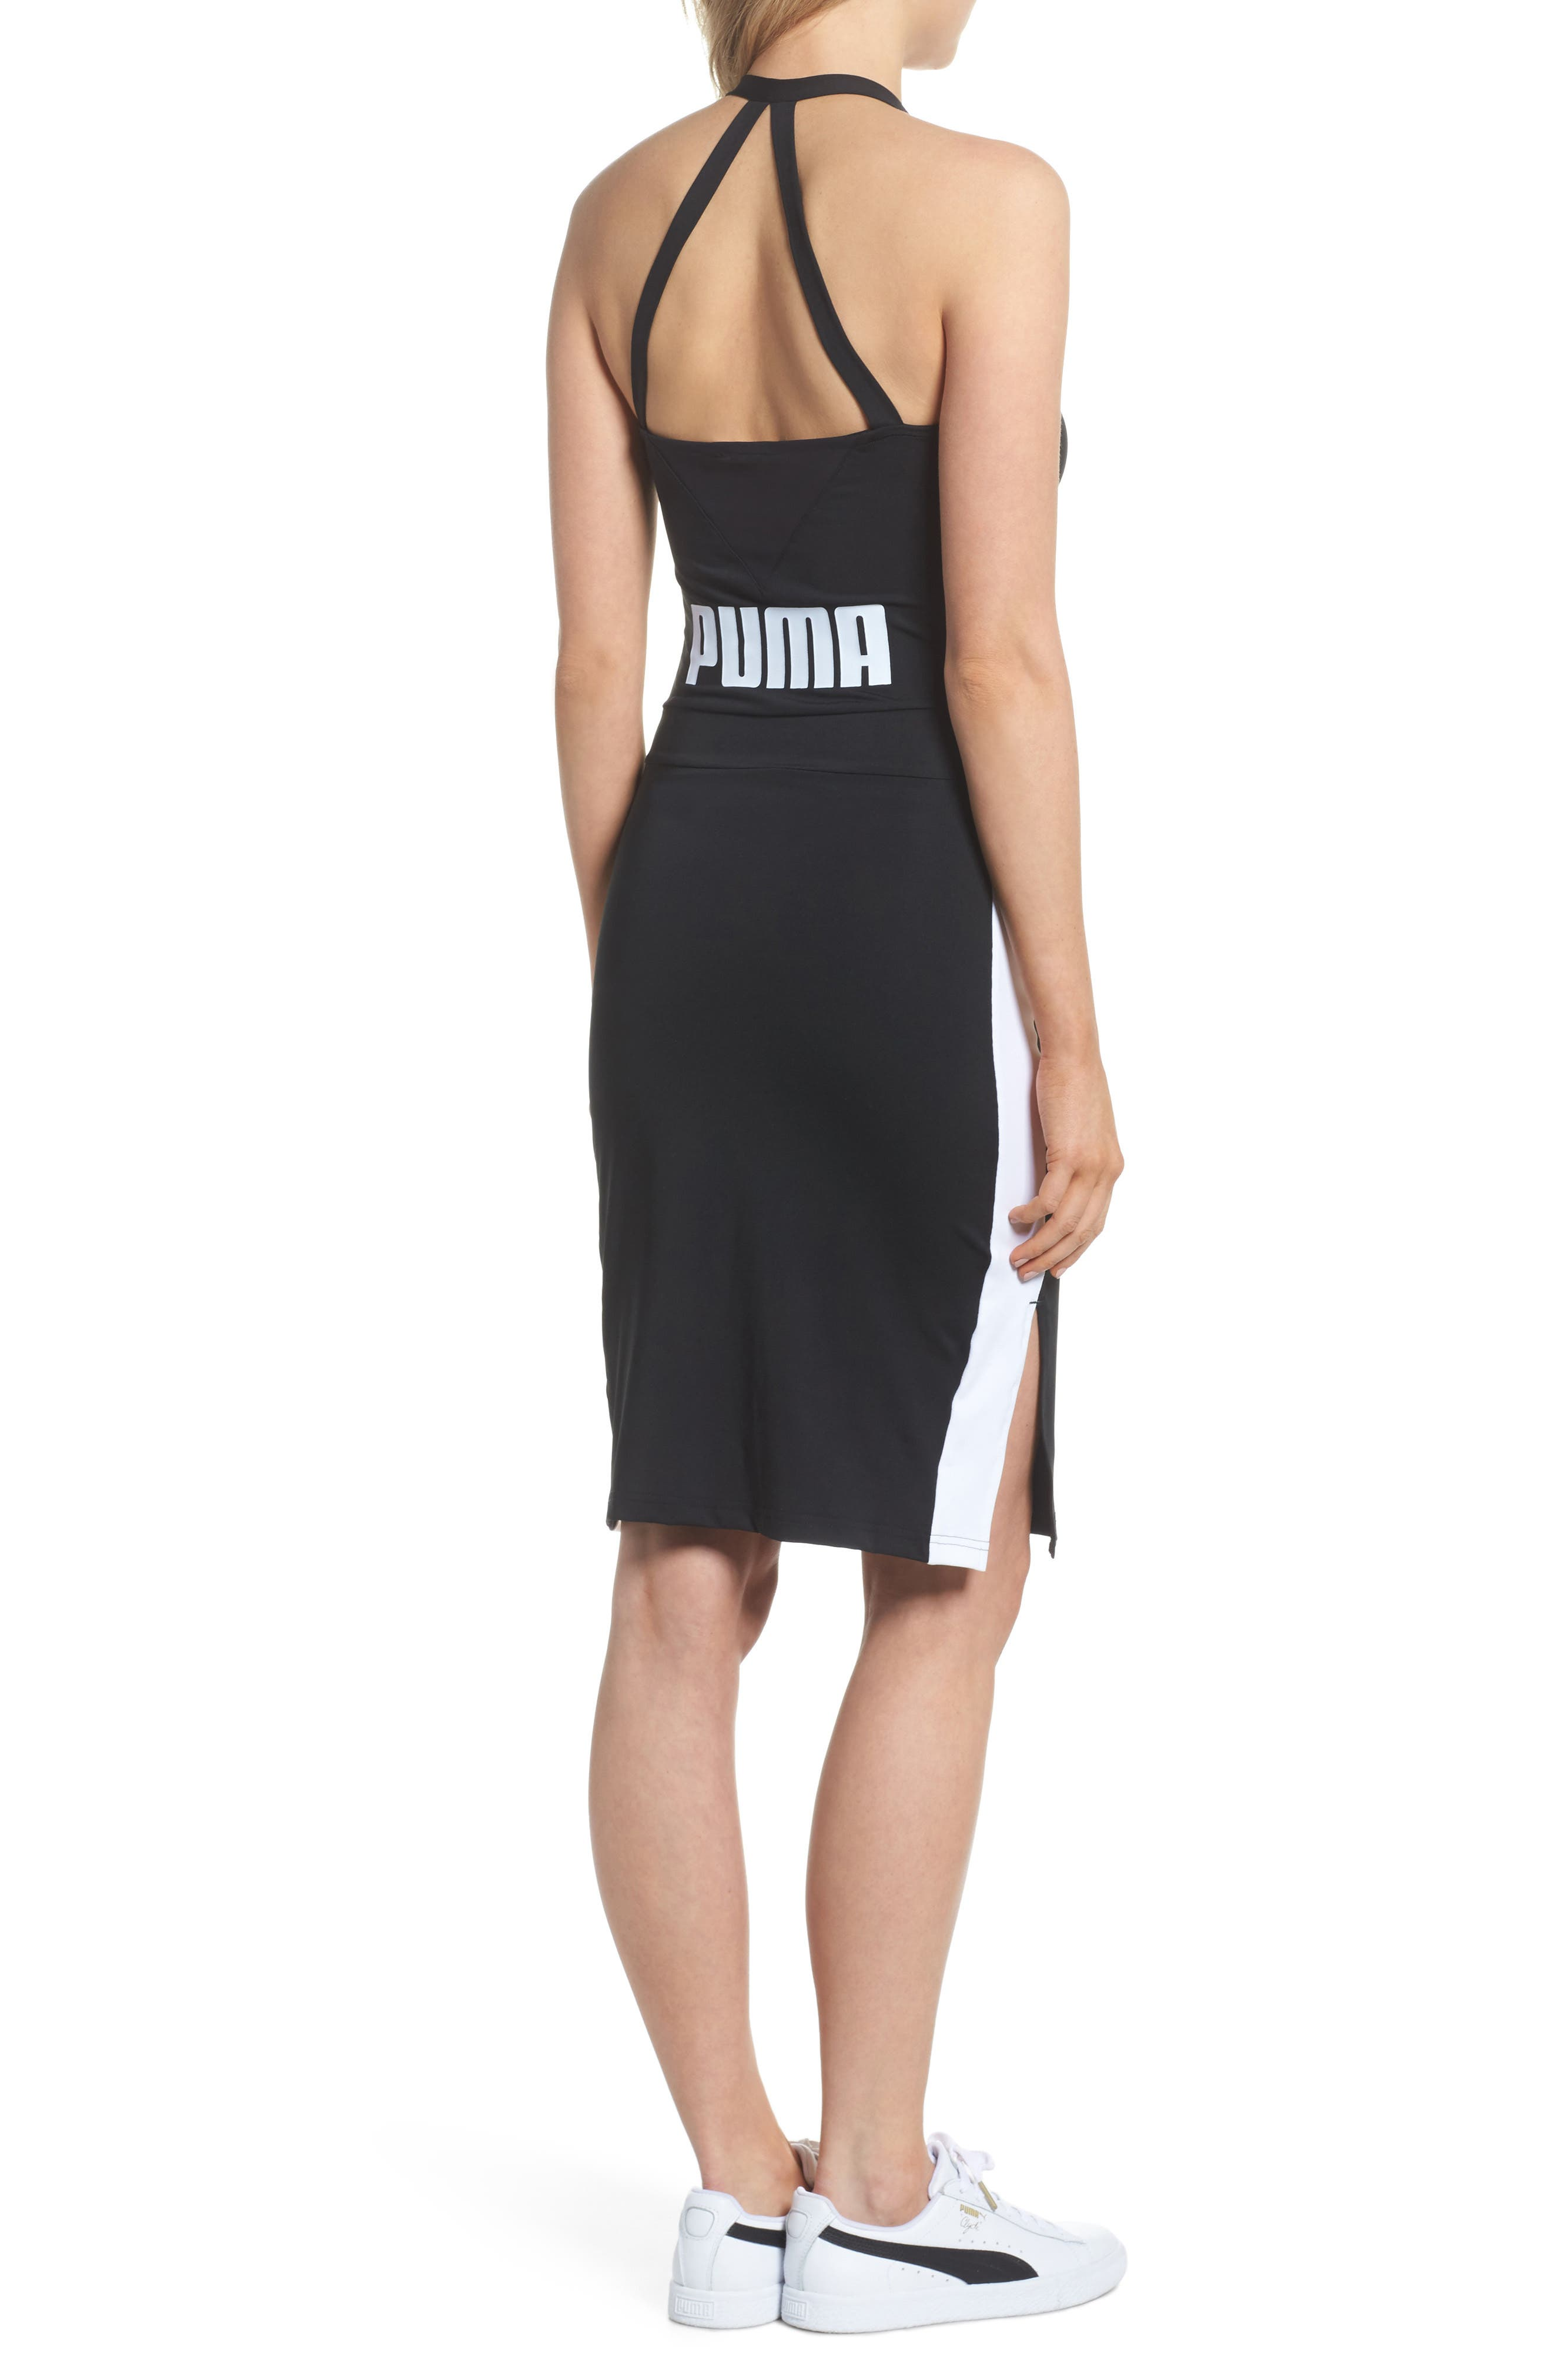 Archive T7 Dress,                             Alternate thumbnail 2, color,                             Puma Black